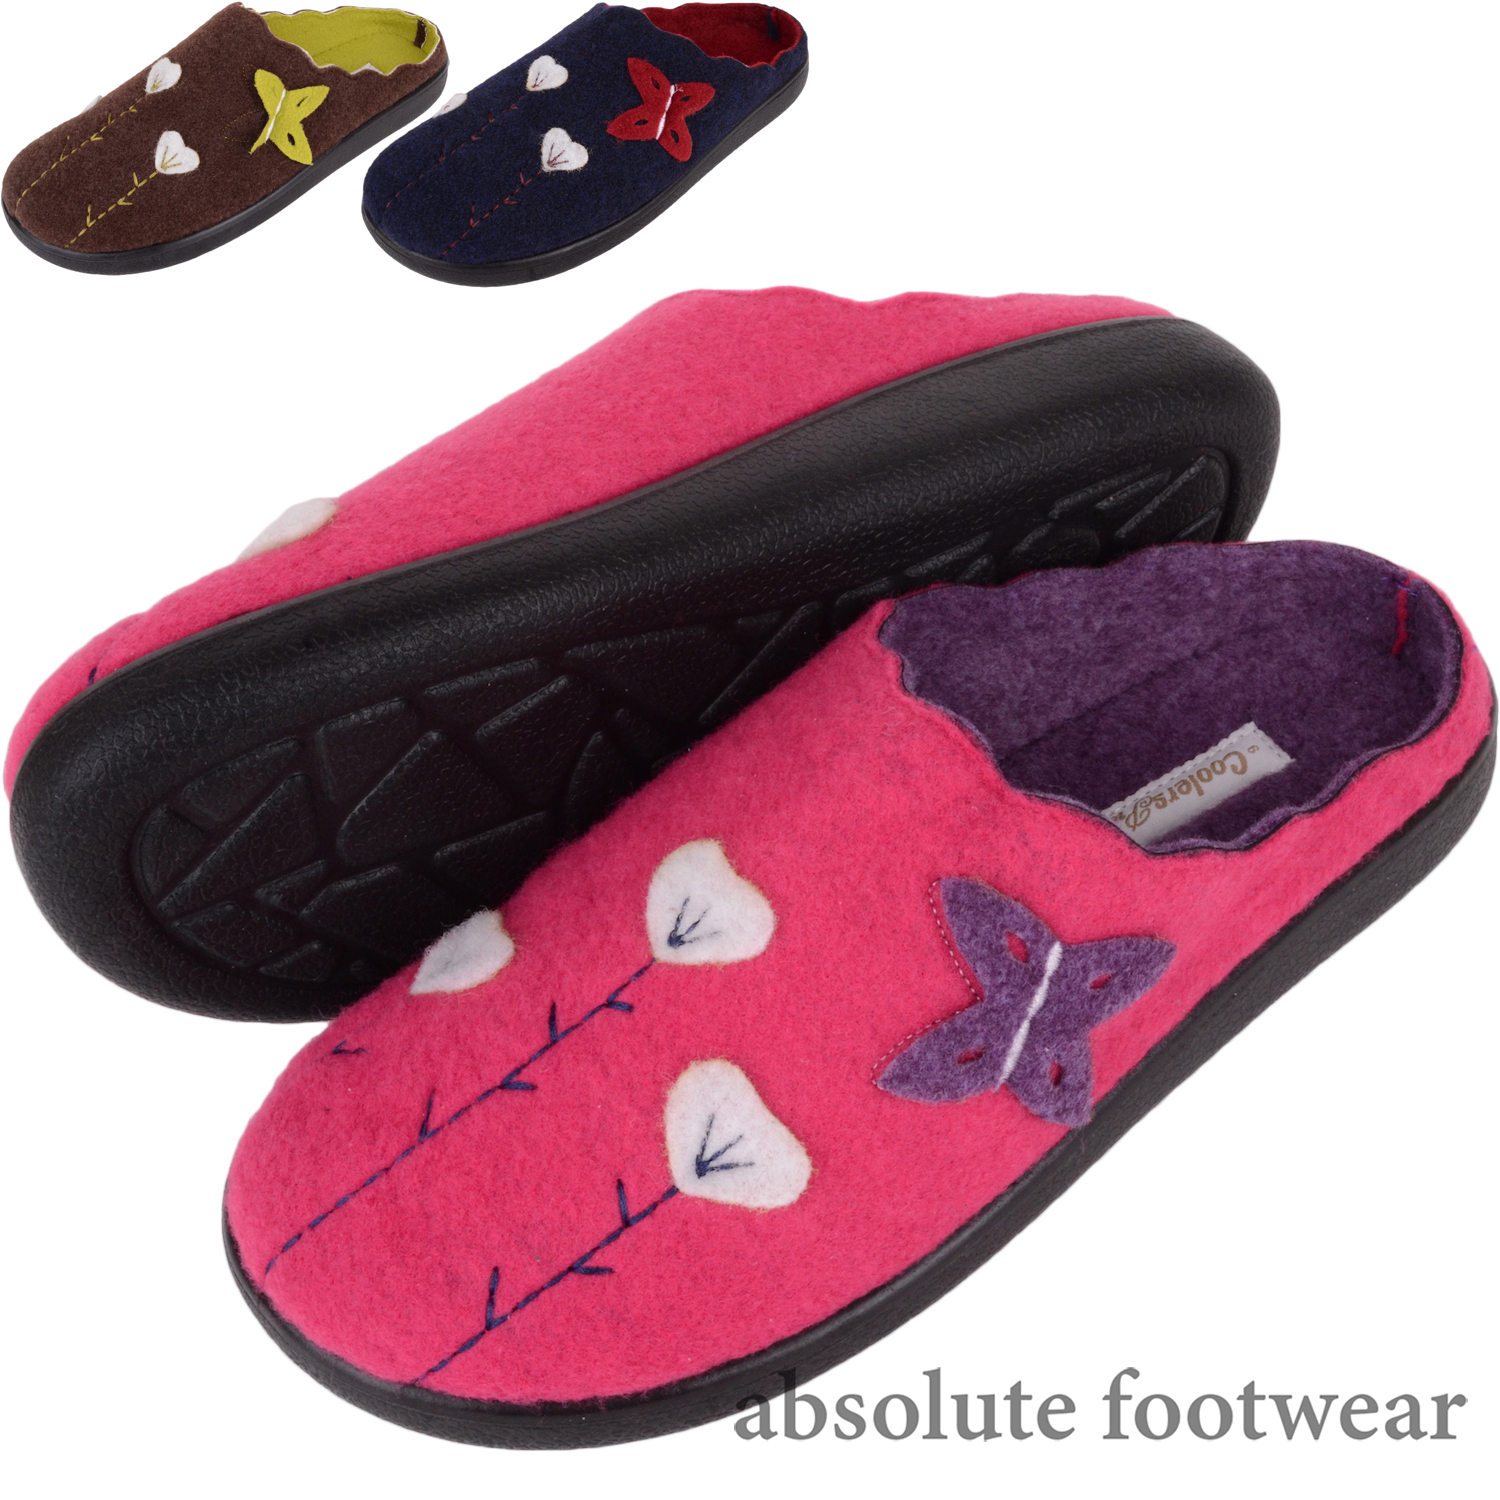 ff25c990f4d65 Details about Ladies / Womens Felt Slip On Mules / Slippers / Indoor Shoes  with Floral Design